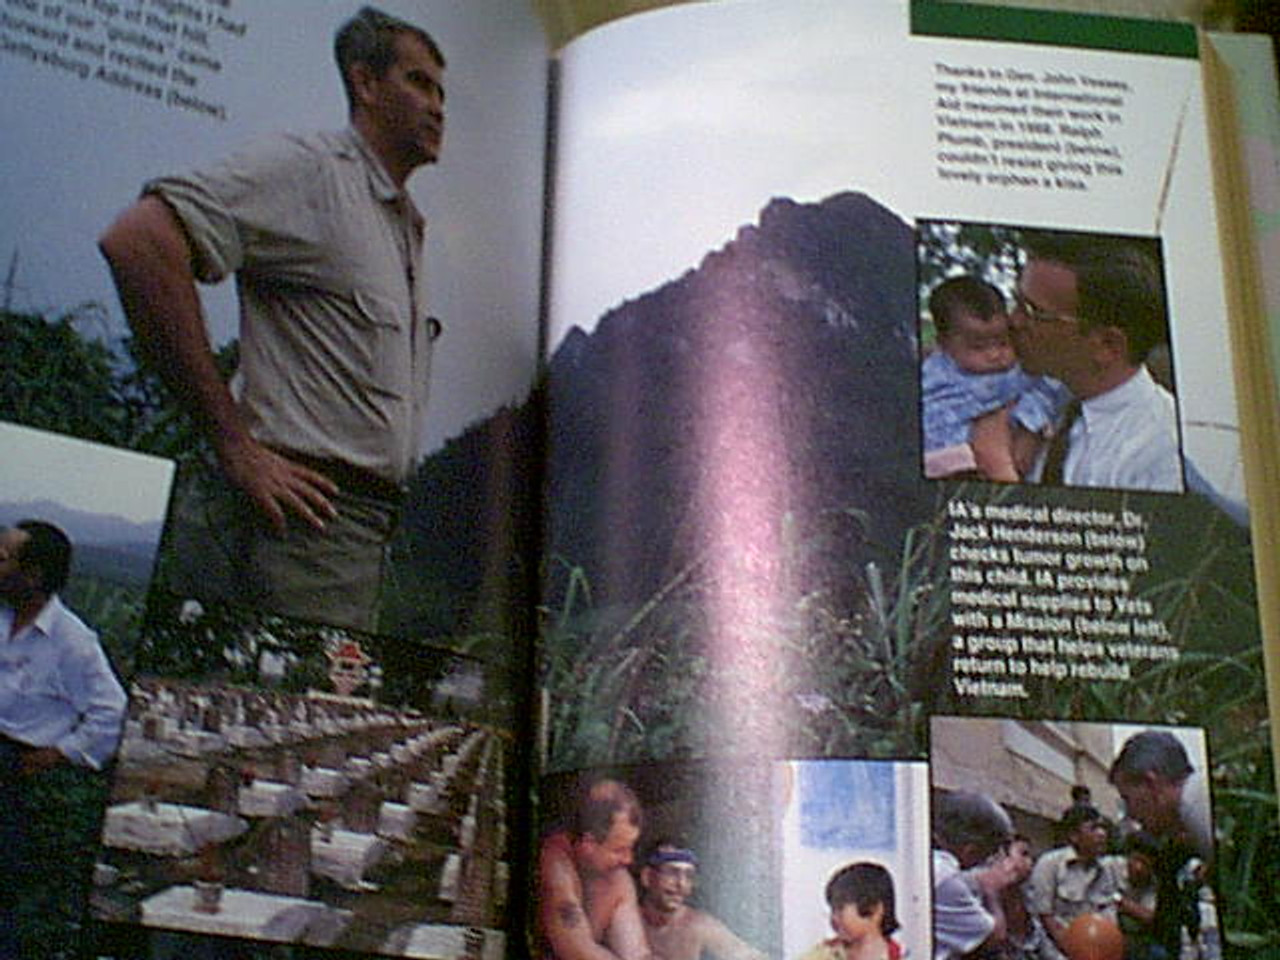 """North, Oliver """"One More Mission-Oliver North Returns To Vietnam"""" 1993 Book Signed Autograph Color Photos"""